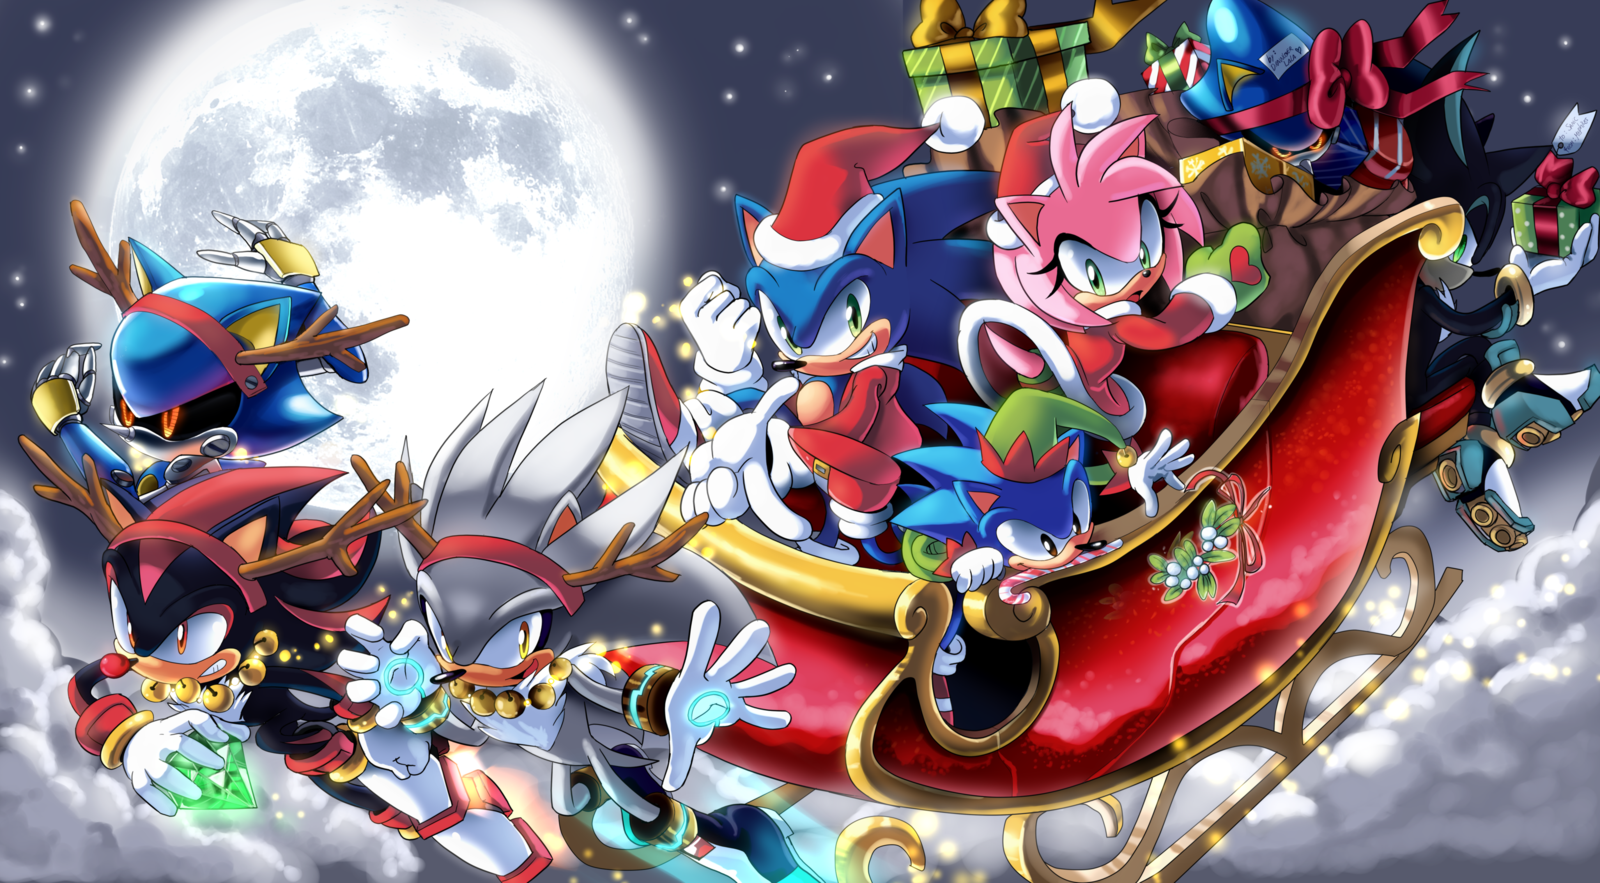 Sonic Christmas.Merry Christmas Sonic The Hedgehog By Drawloverlala